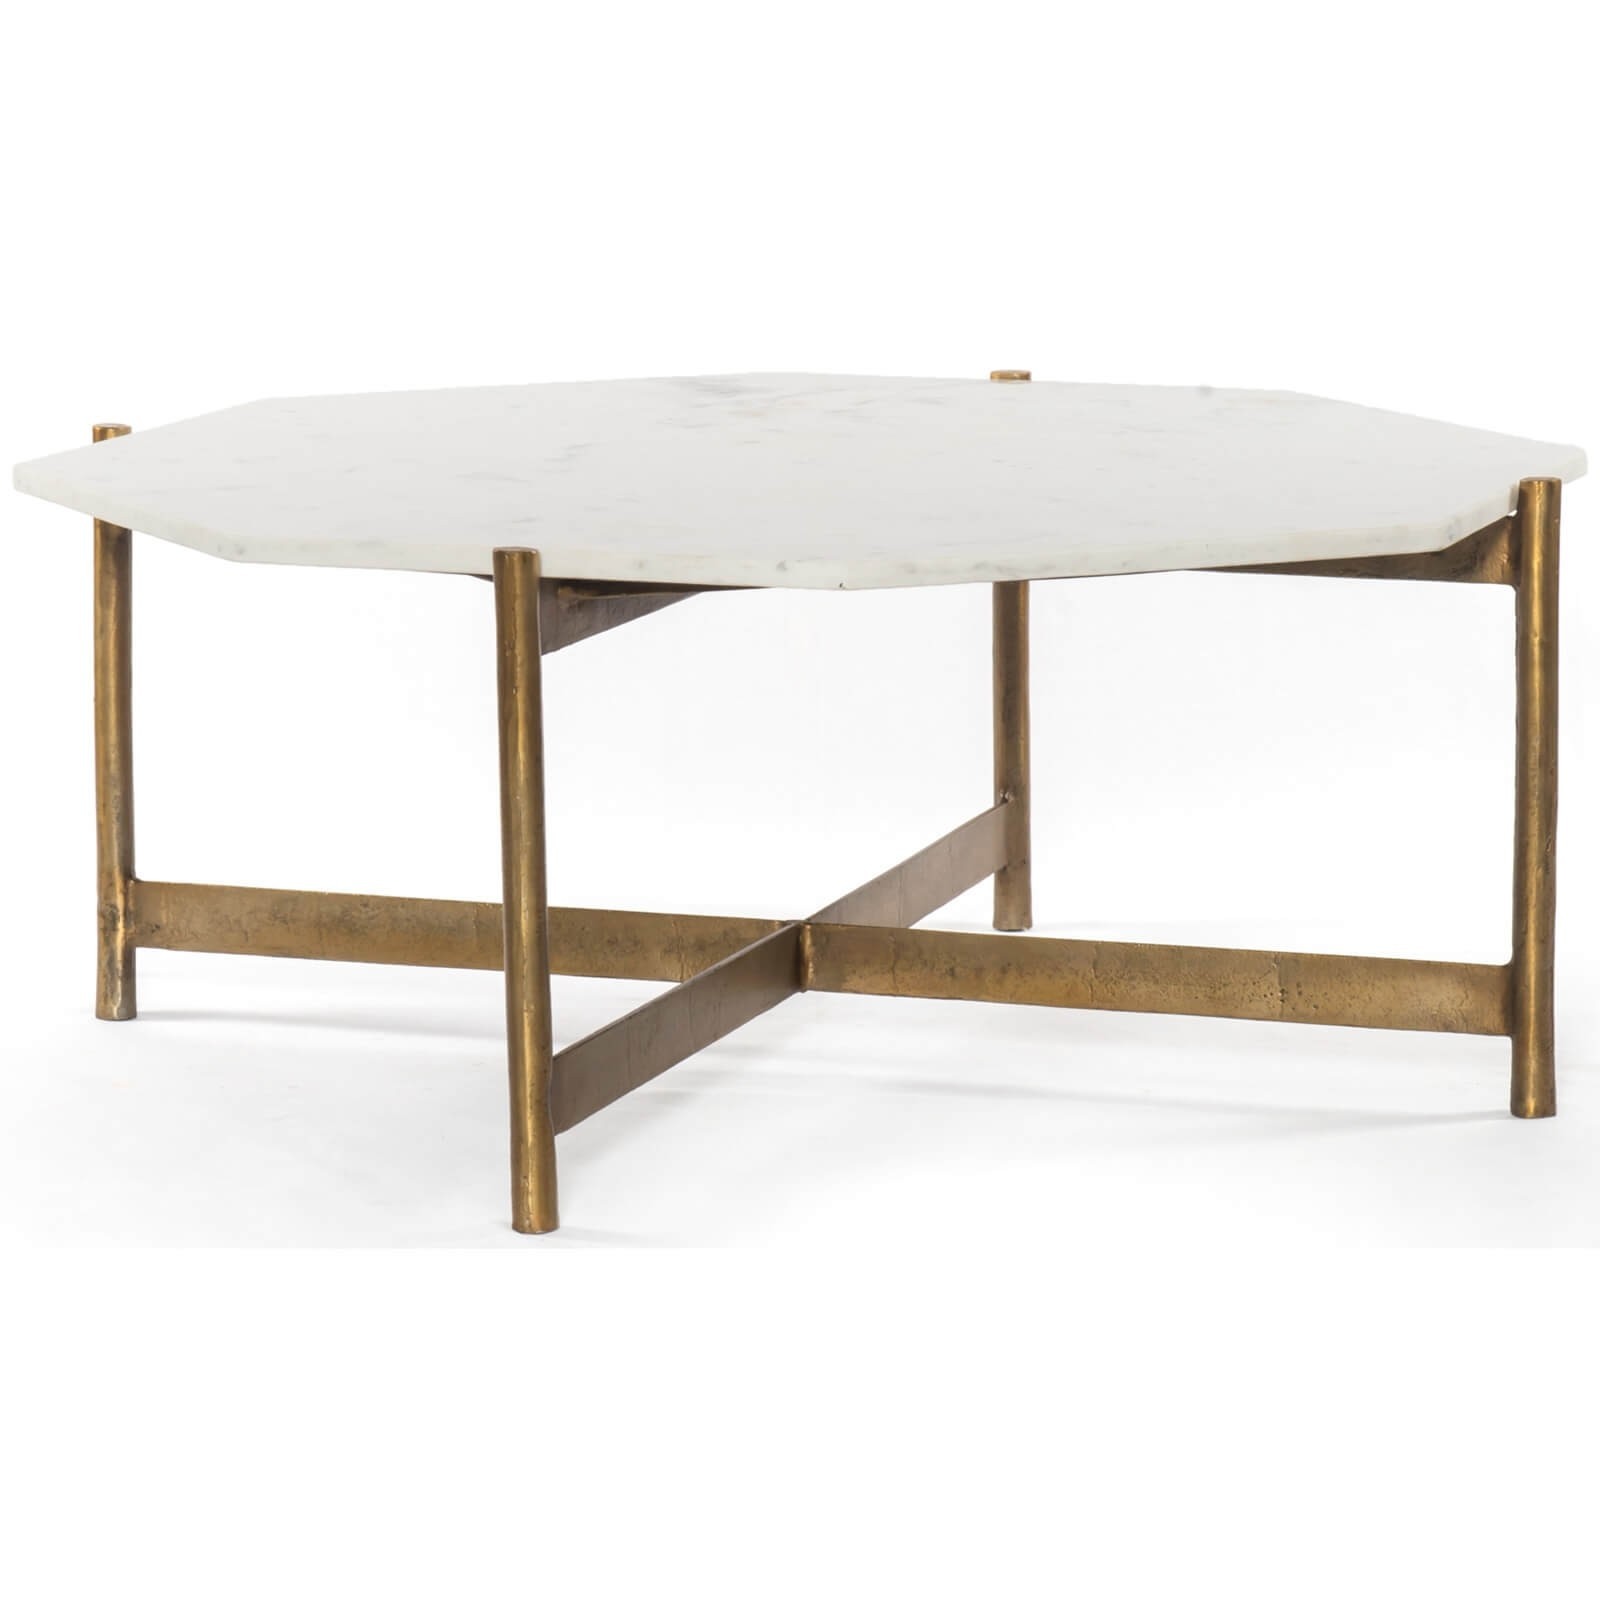 adair coffee table raw brass tables accent furniture gold end target glass black lamp ethan allen kitchen trestle base patio grill tiffany dragonfly bar ikea bedroom wardrobes